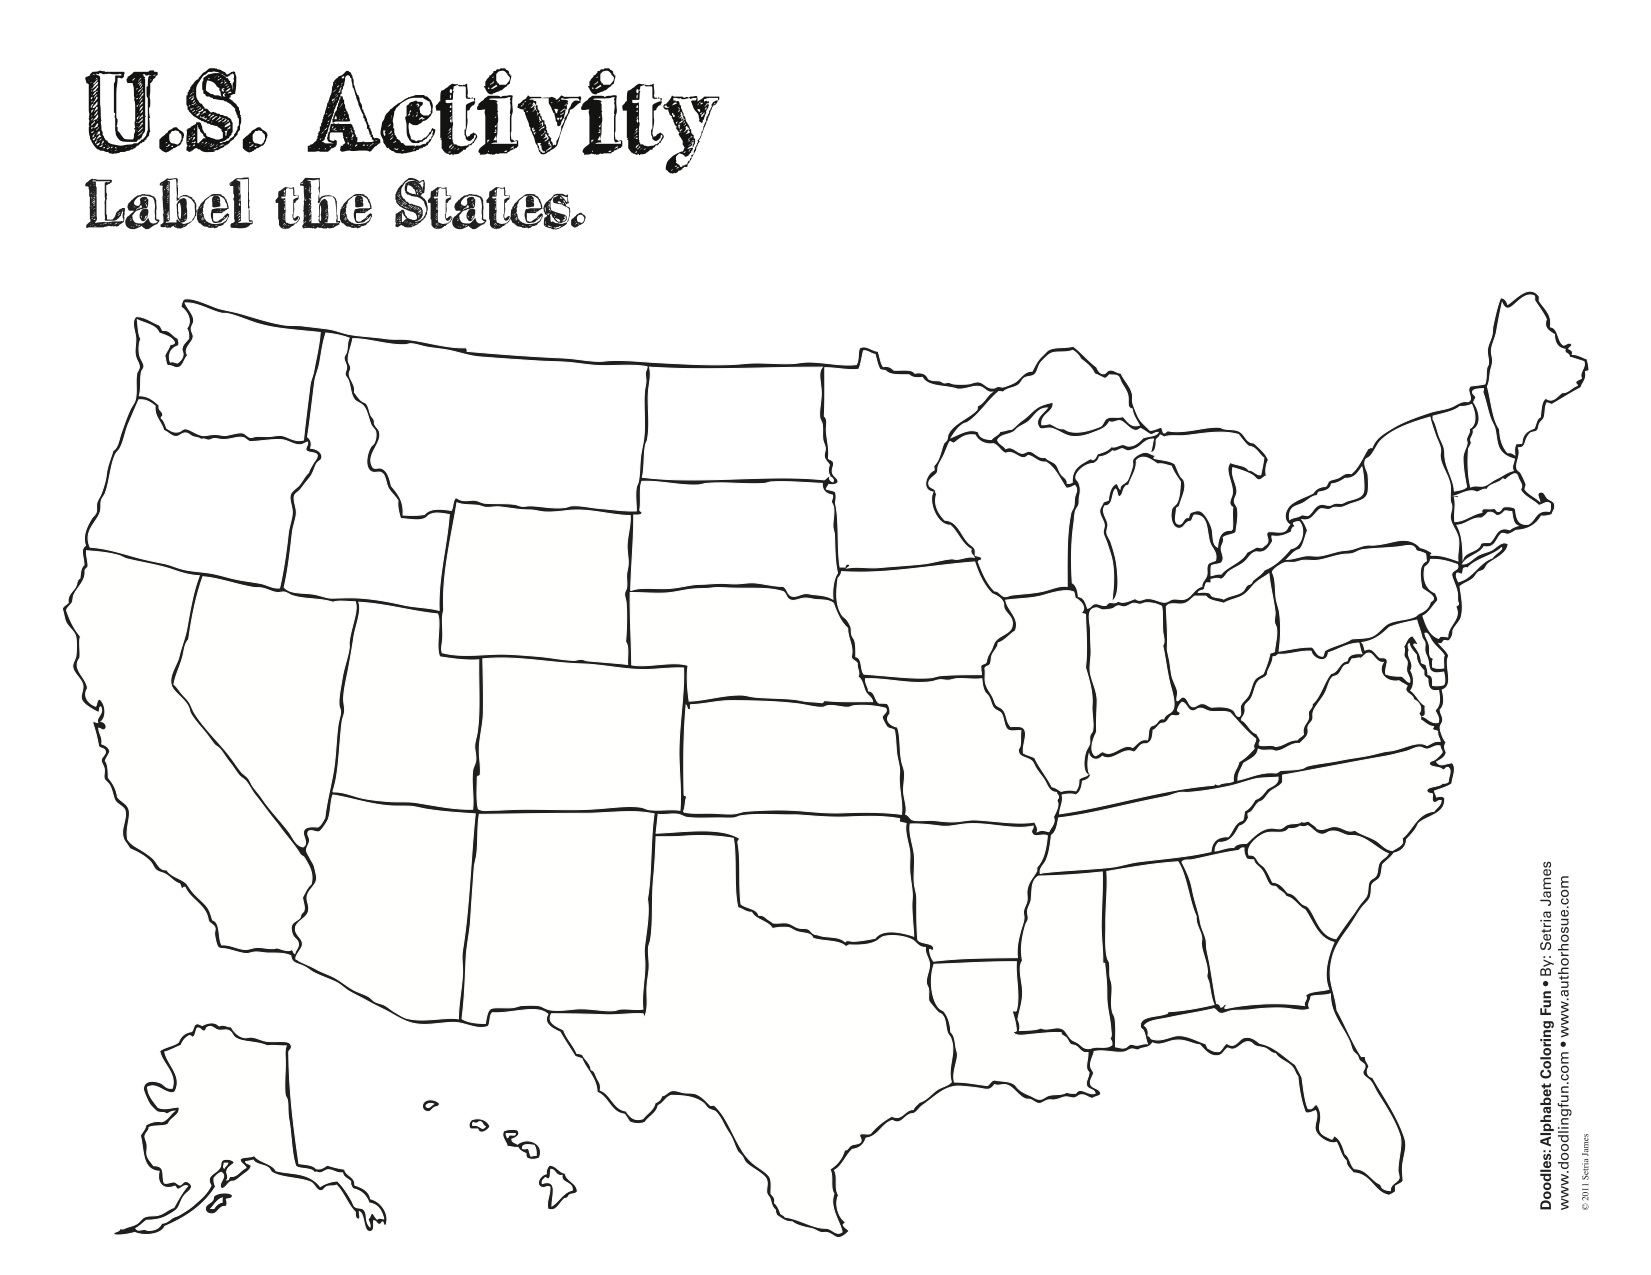 USA Blank Map Blank States Map Dr Odd Blank Usa Map Test Usa Get - Blank us map with states